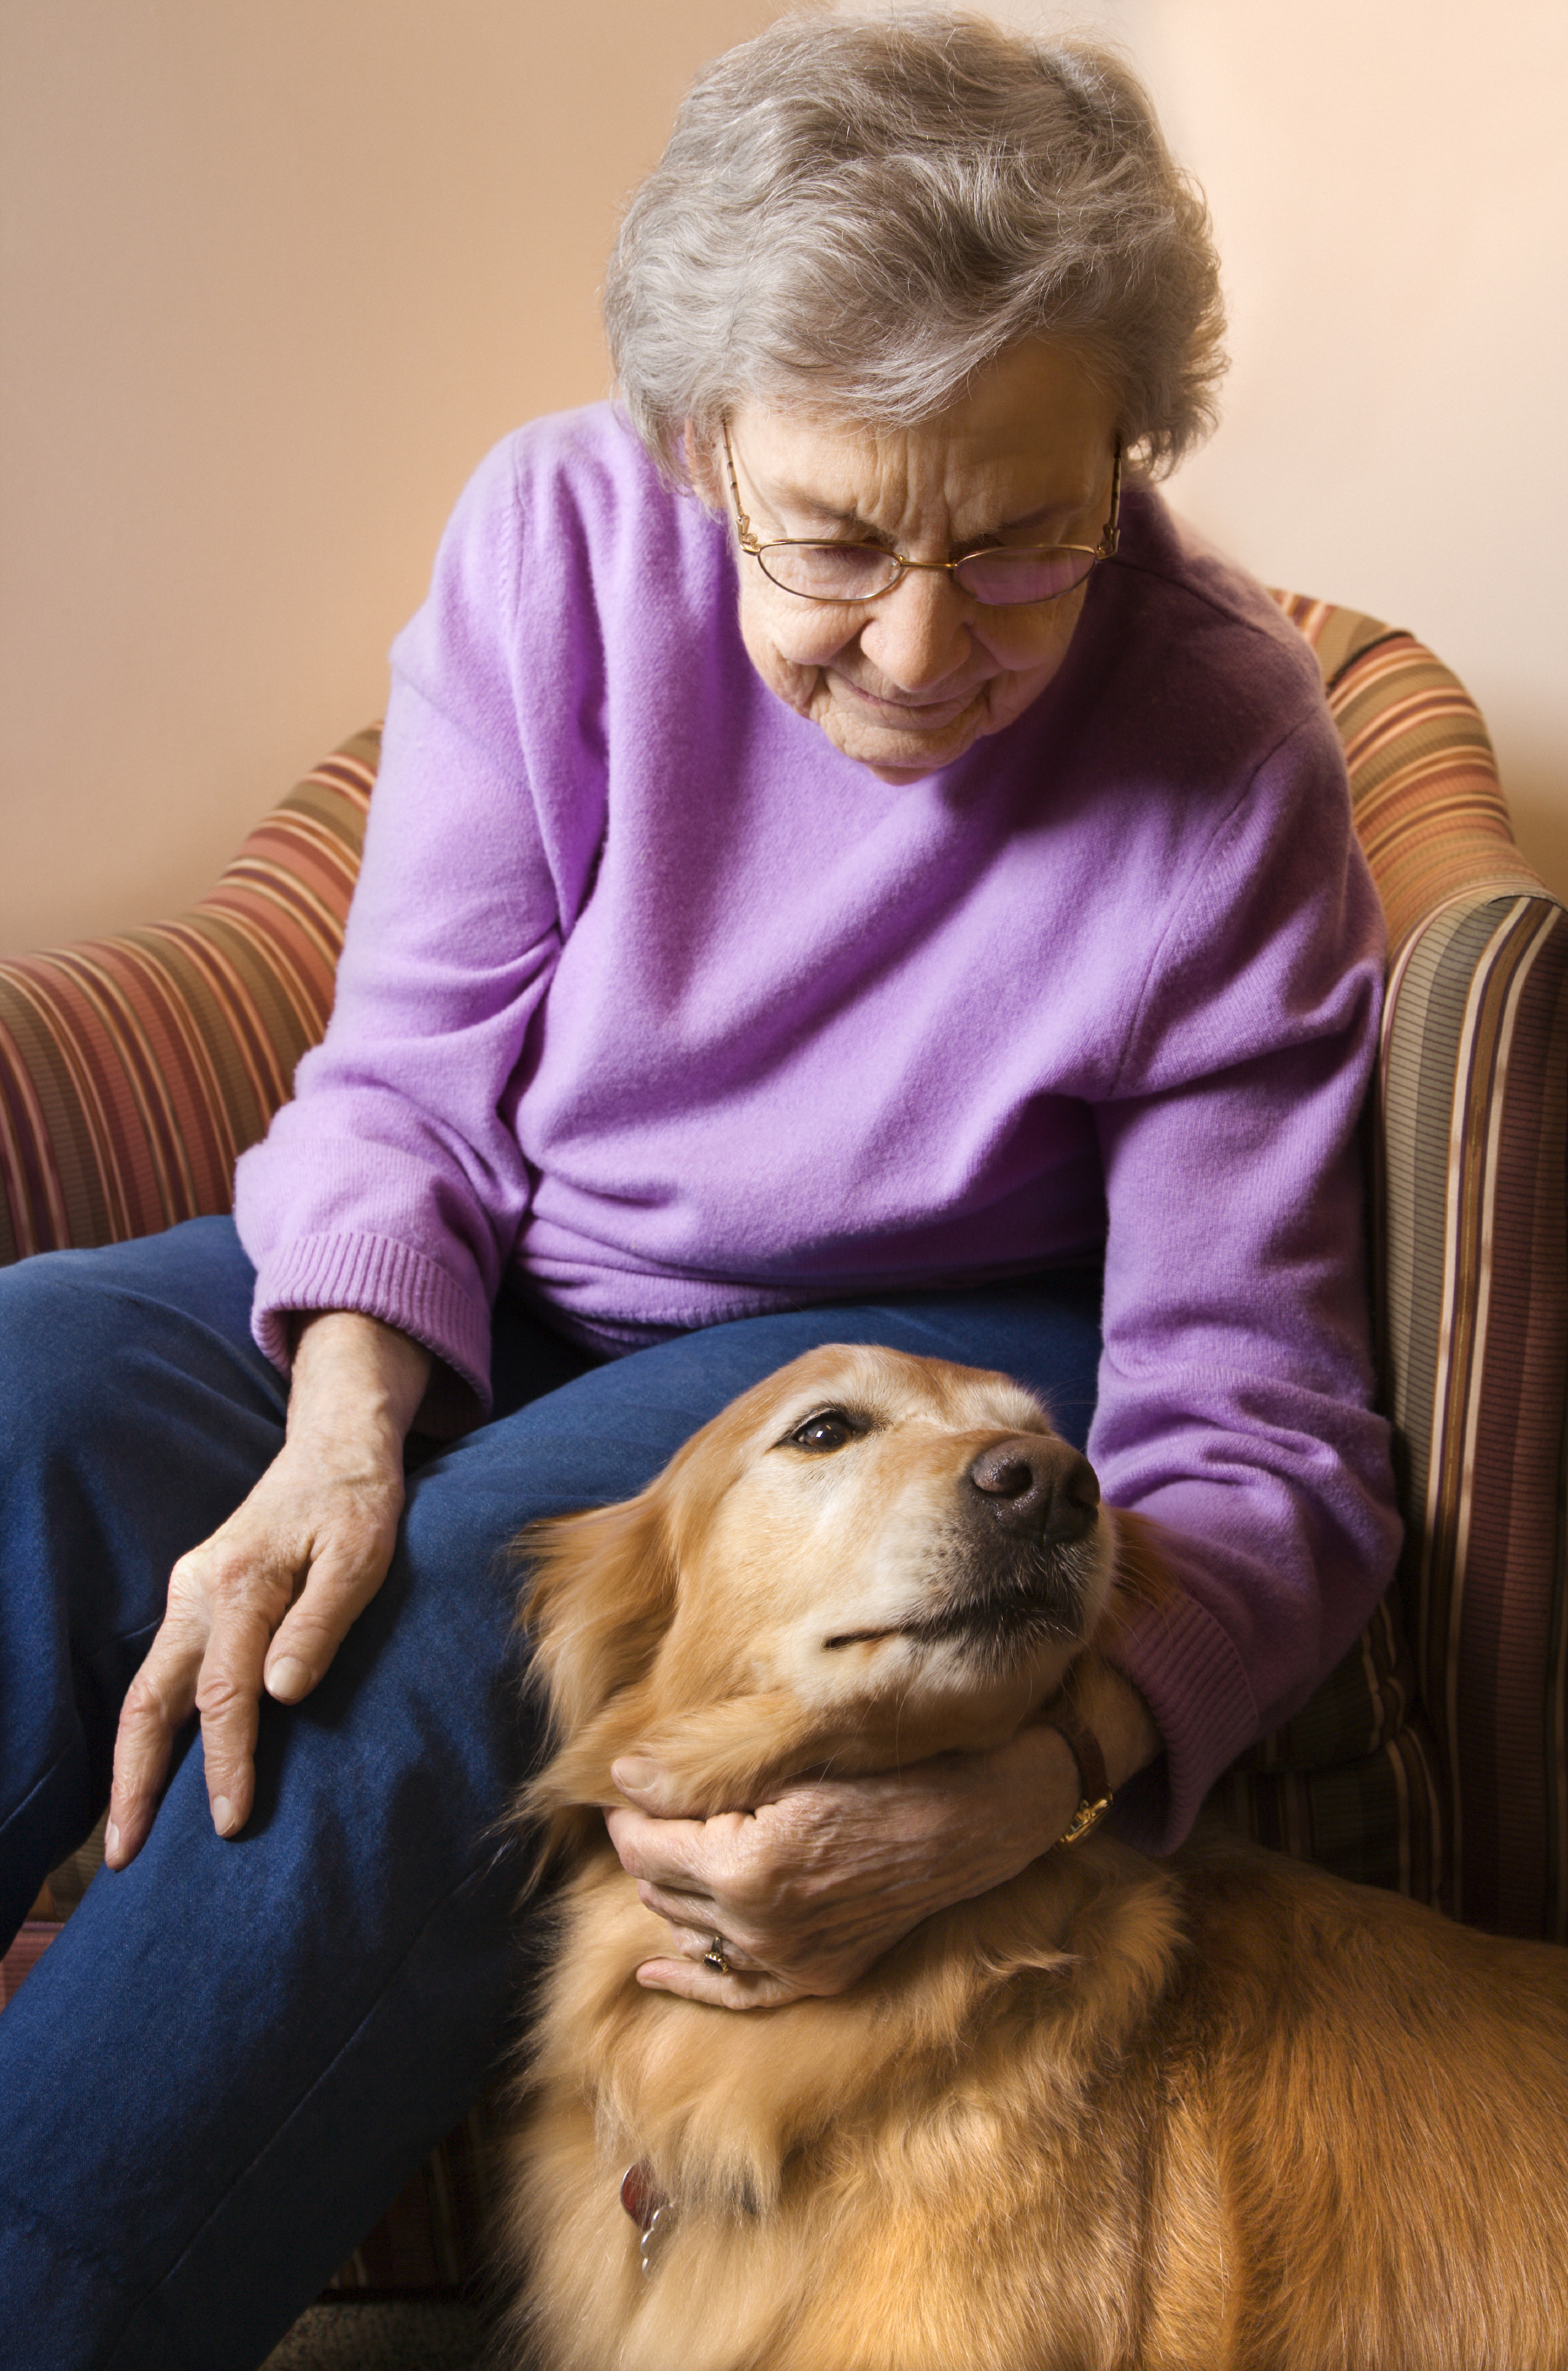 An Older Woman Sitting in a Chair Petting Her Dog